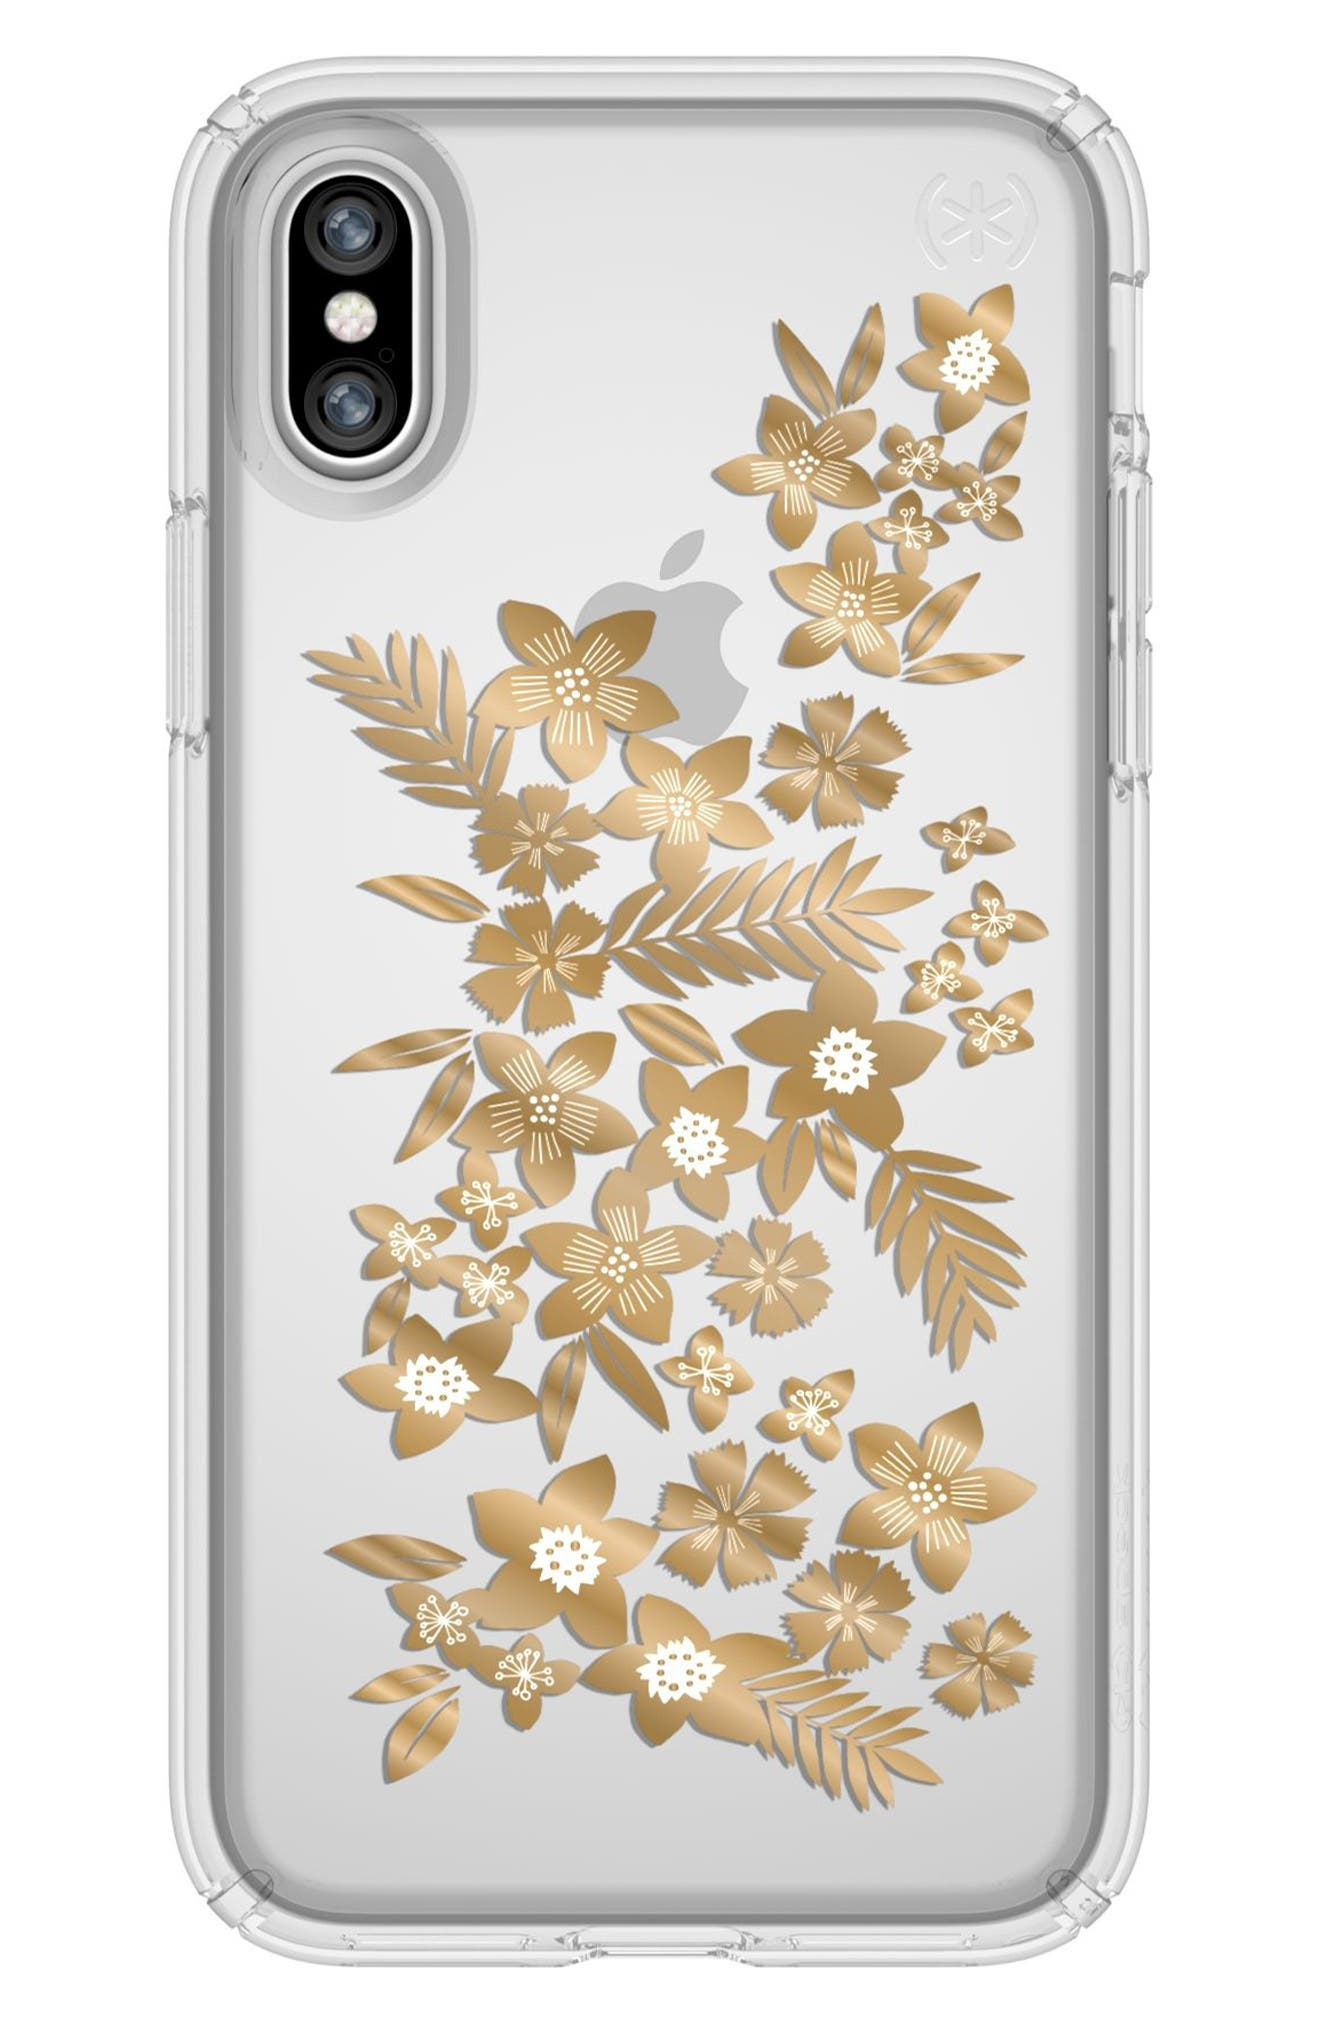 Shimmer Metallic Floral Transparent iPhone X & Xs Case,                             Main thumbnail 1, color,                             SHIMMER FLORAL METALLIC/ CLEAR